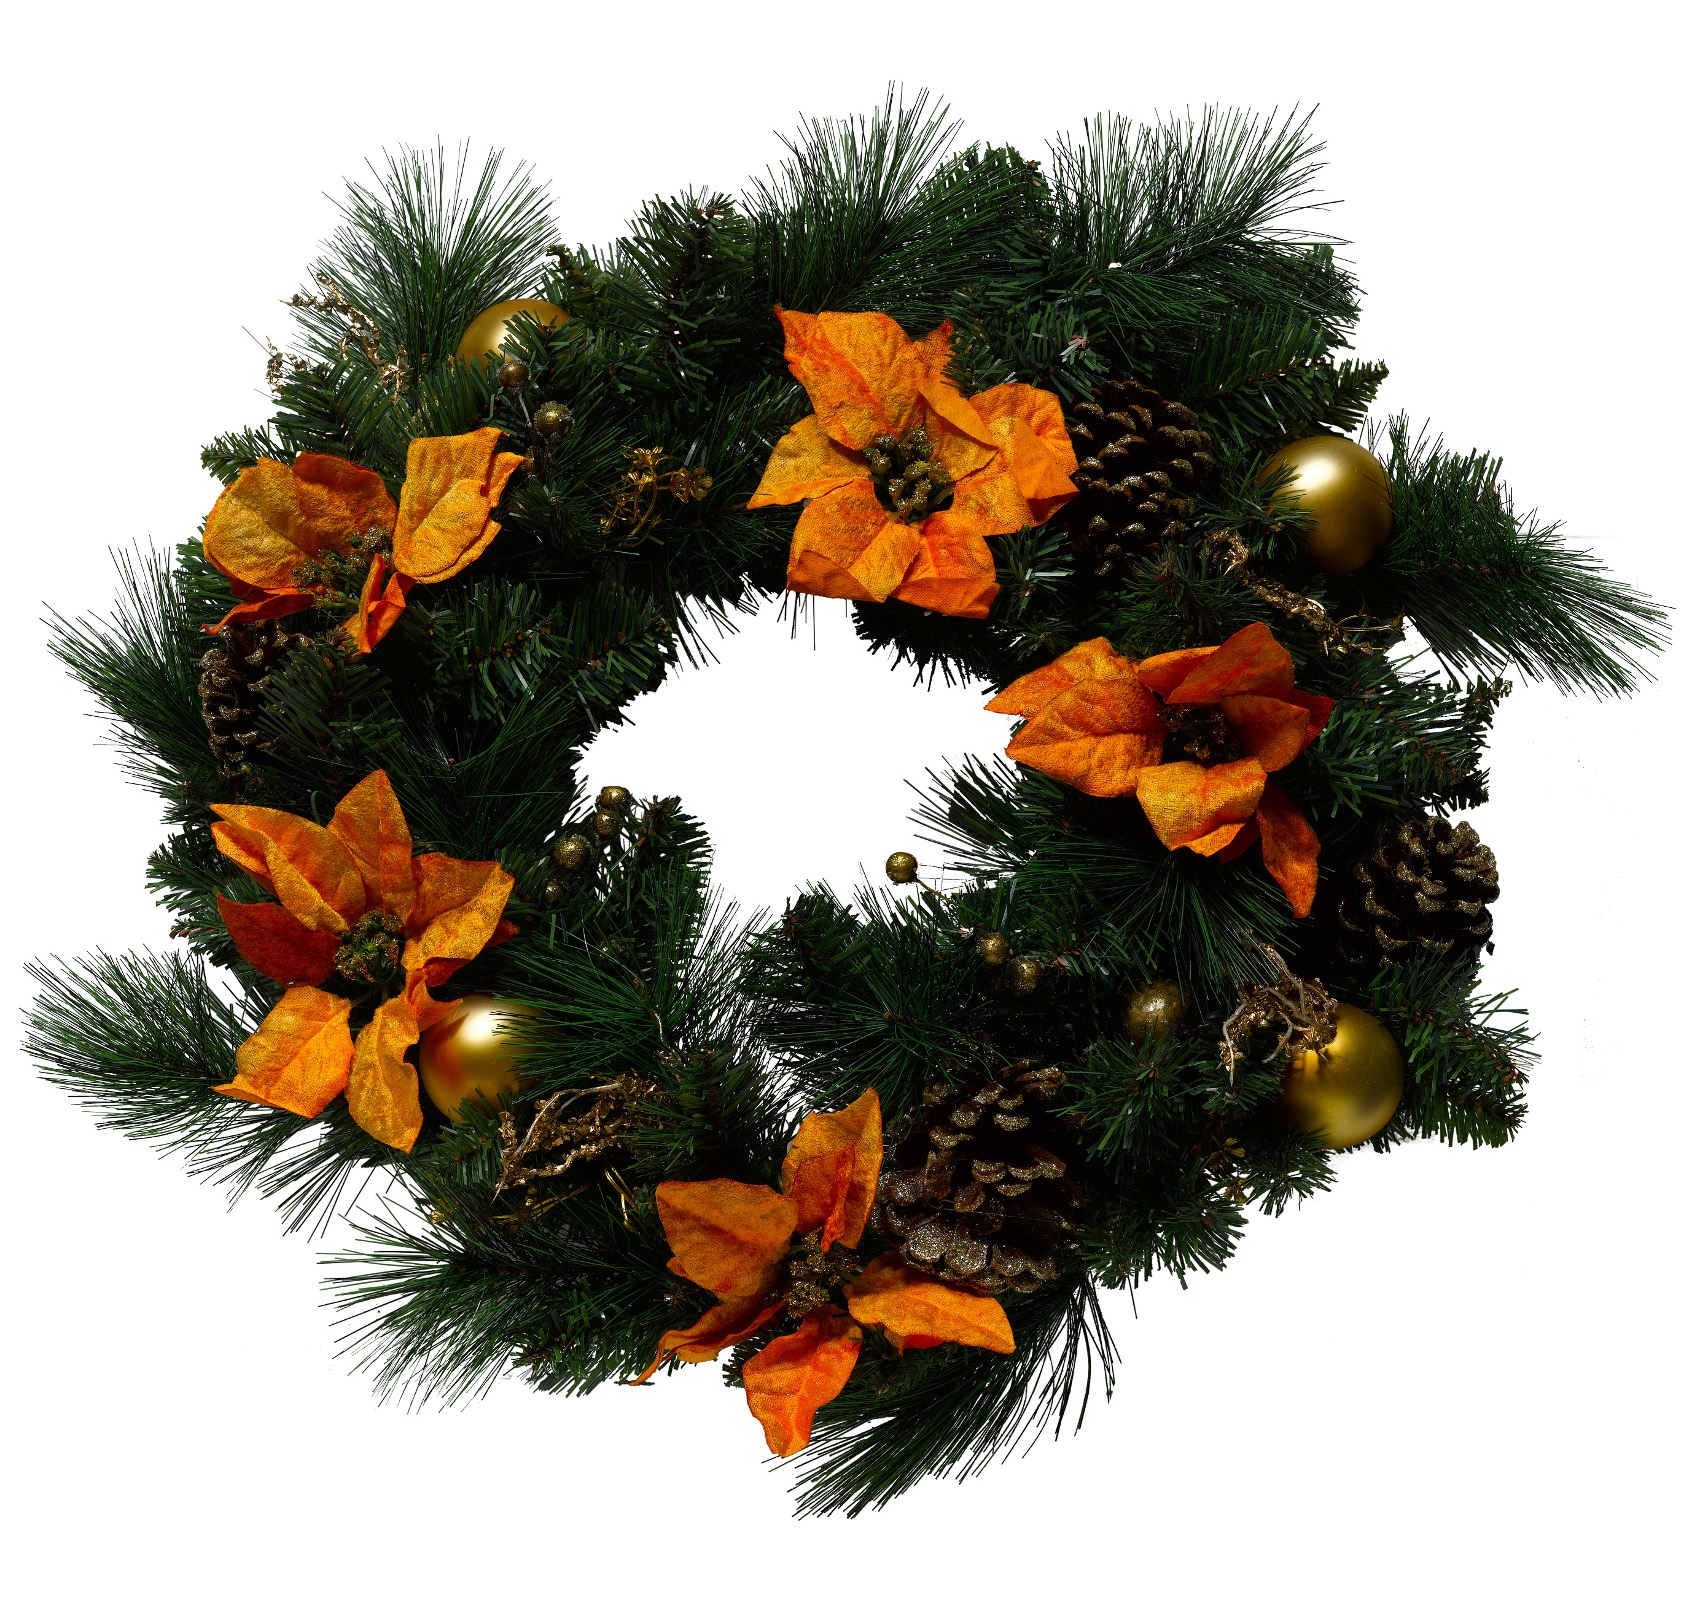 Features:: This pre-decorated wreath would make a great table centrepiece - it looks great on its own or with a large candle in the middle!